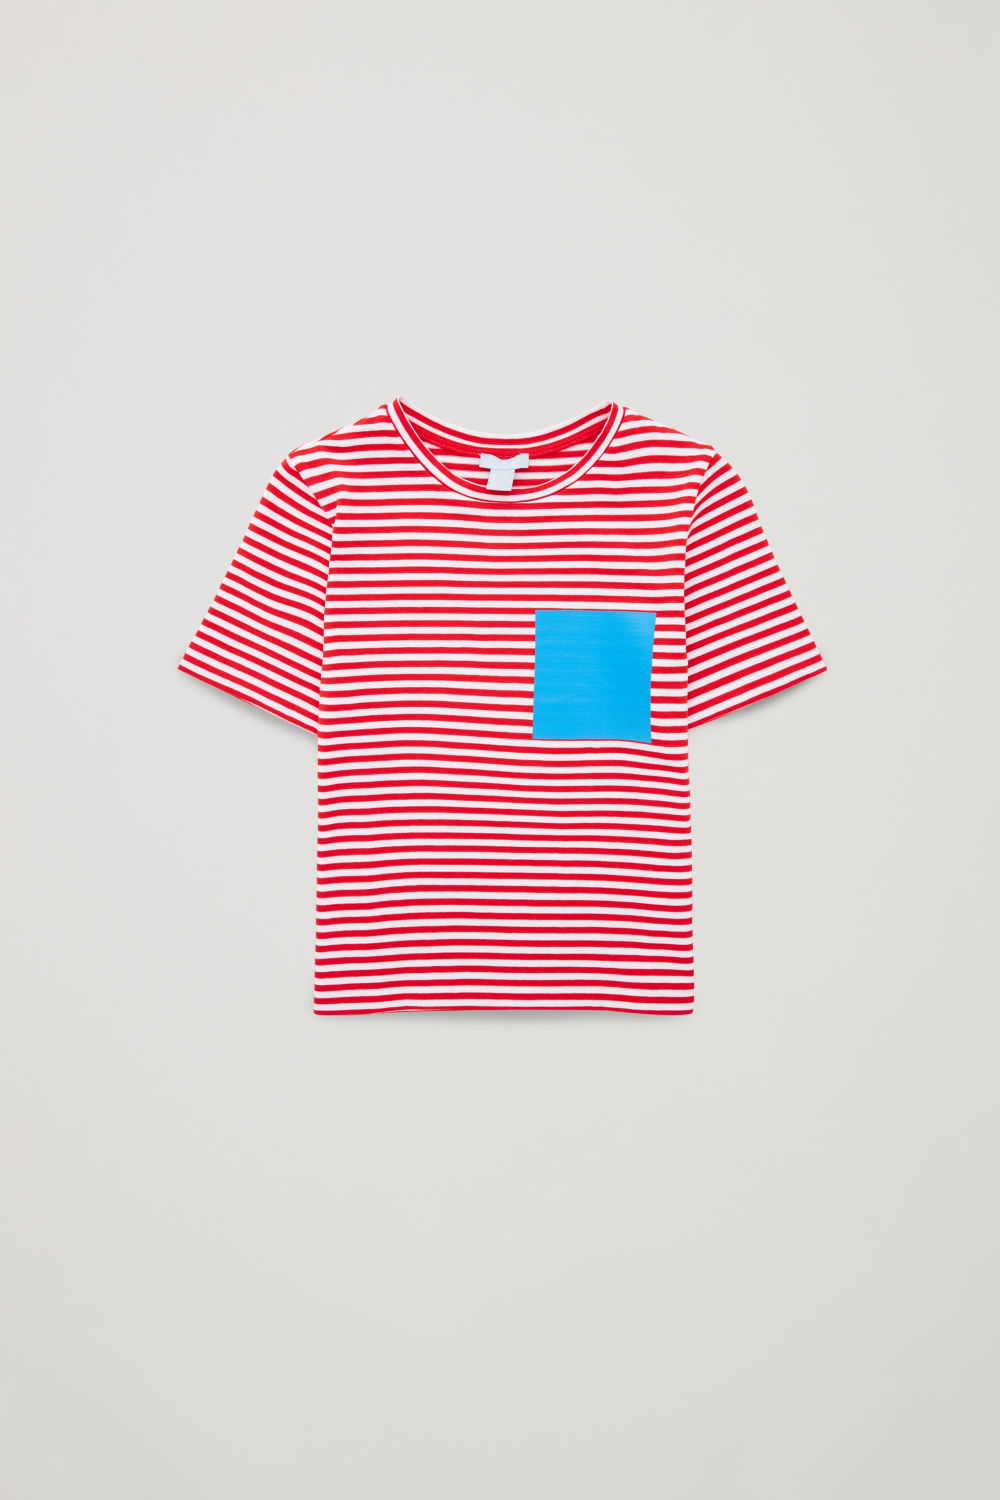 STRIPED T-SHIRT WITH FAKE POCKET